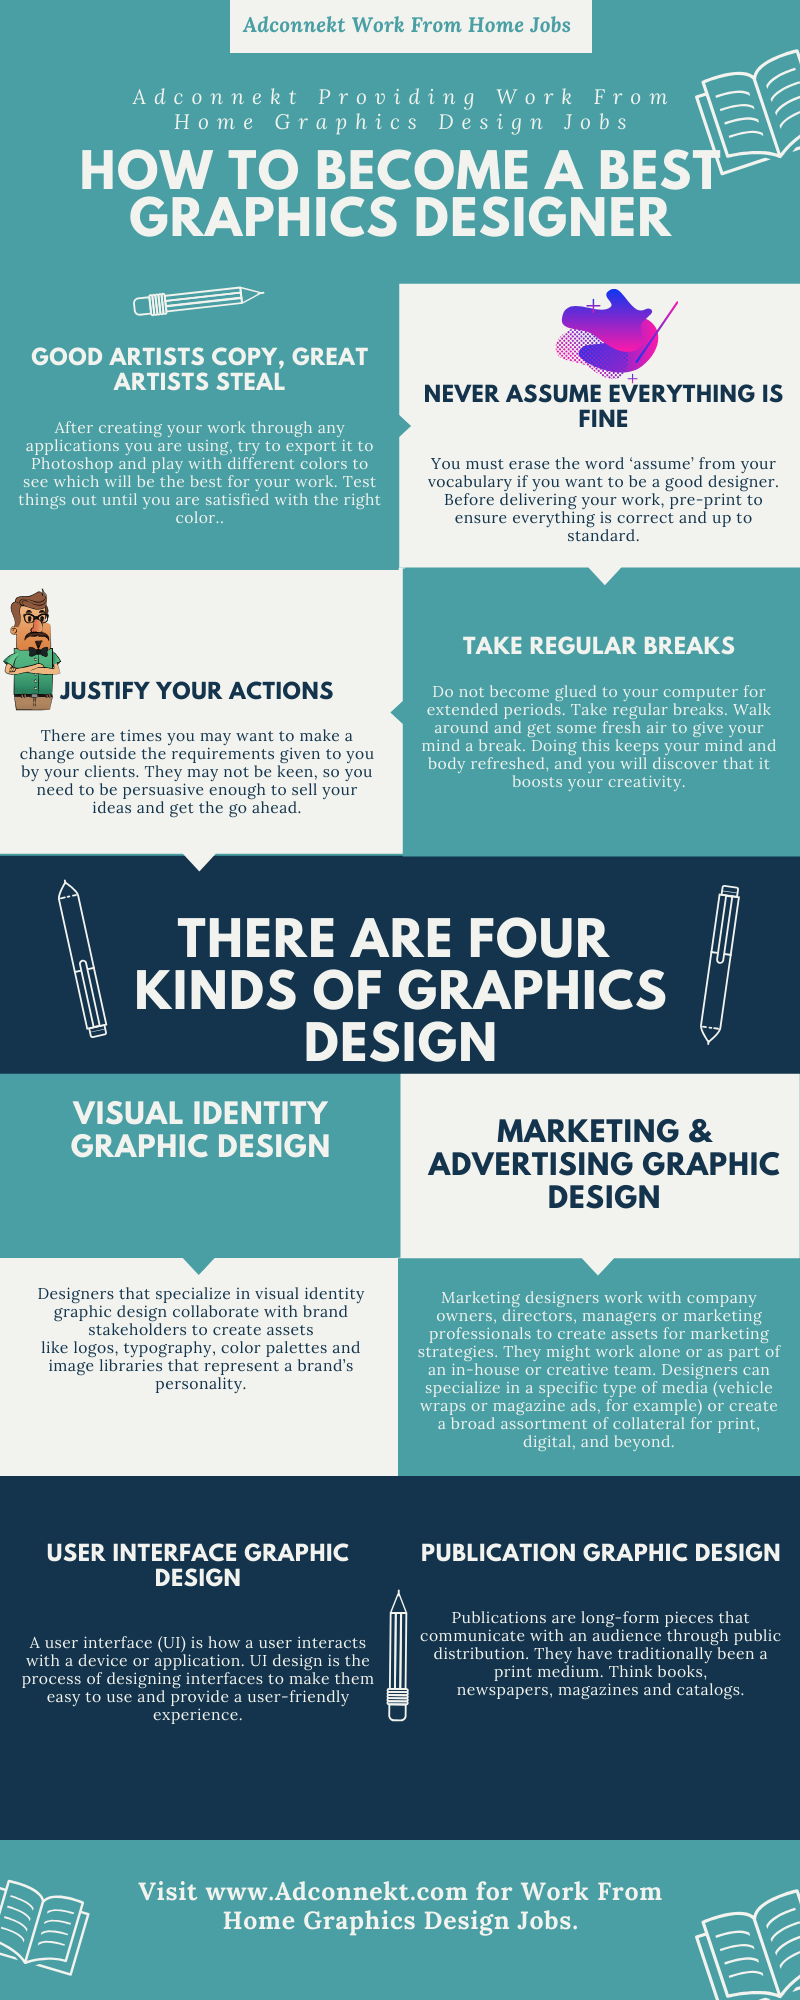 Work From Home Graphics Design Jobs Design Jobs Work From Home Jobs Graphic Design Jobs